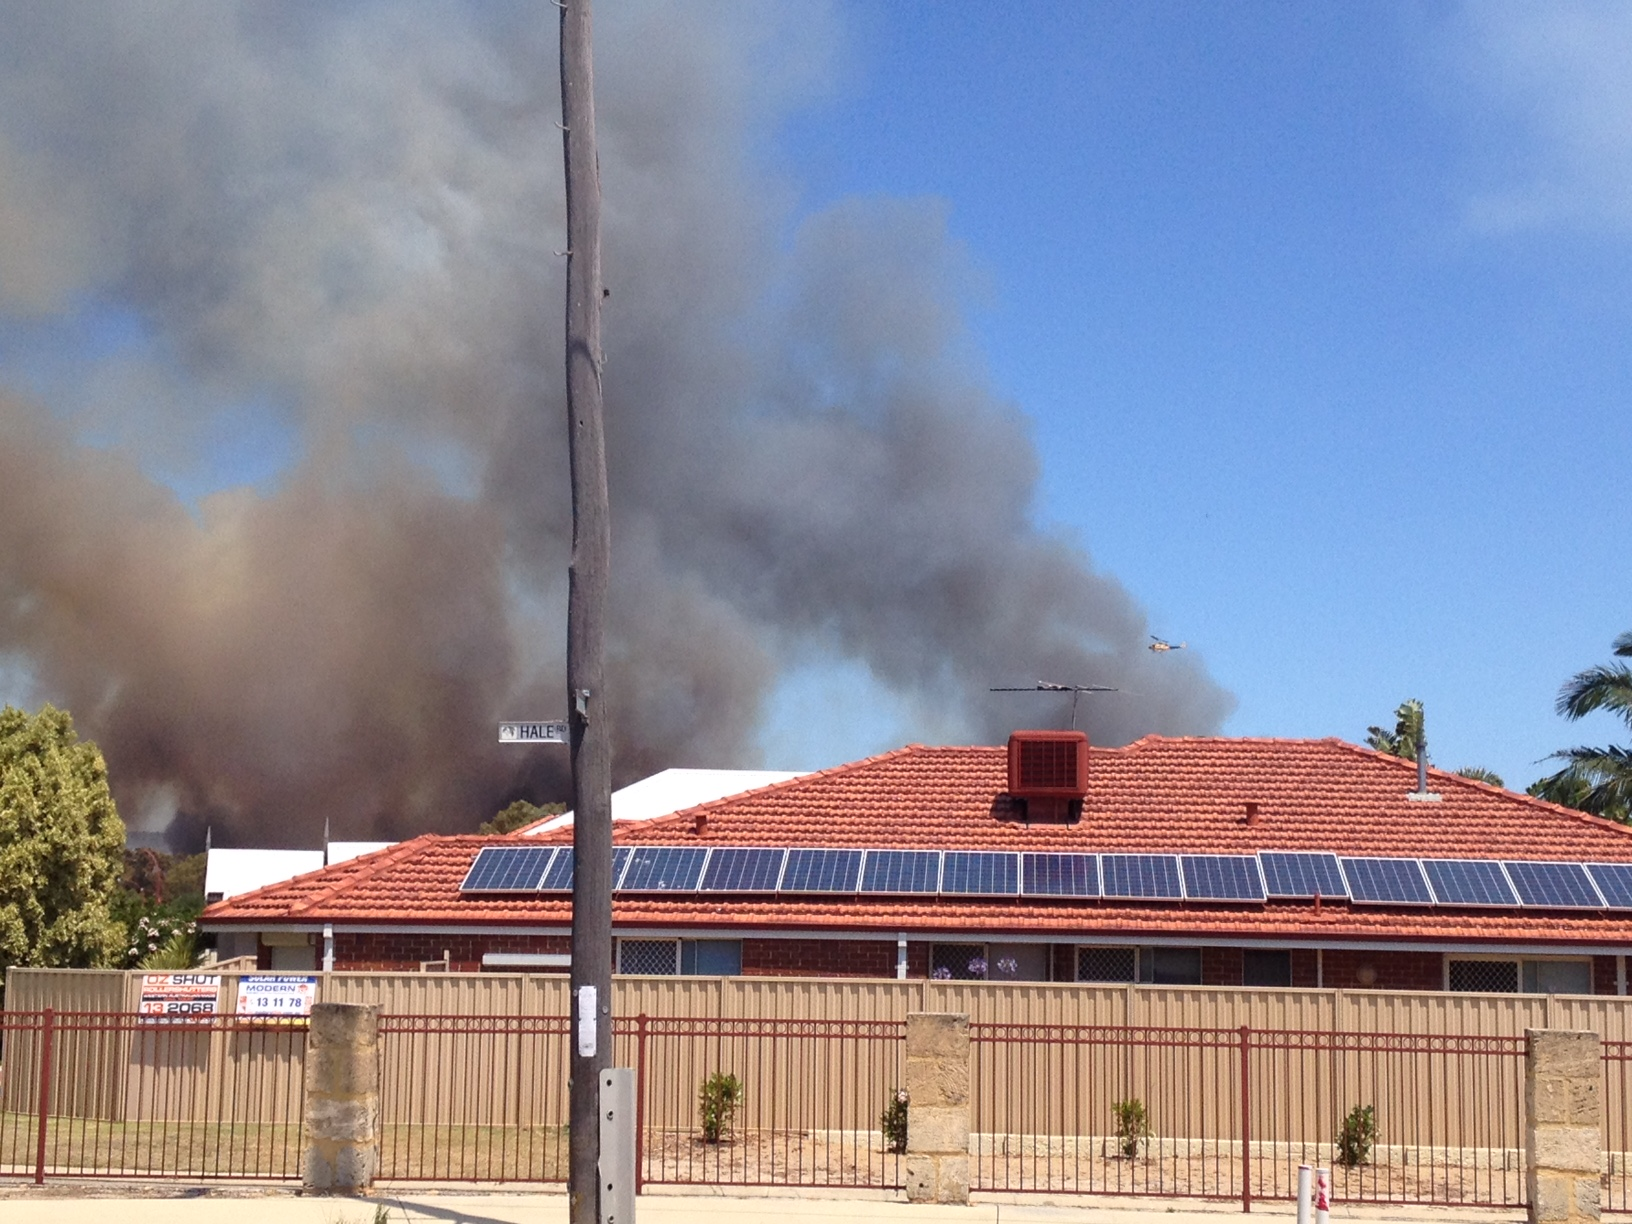 Black smoke can be seen in Perth's outer suburbs. (9NEWS)